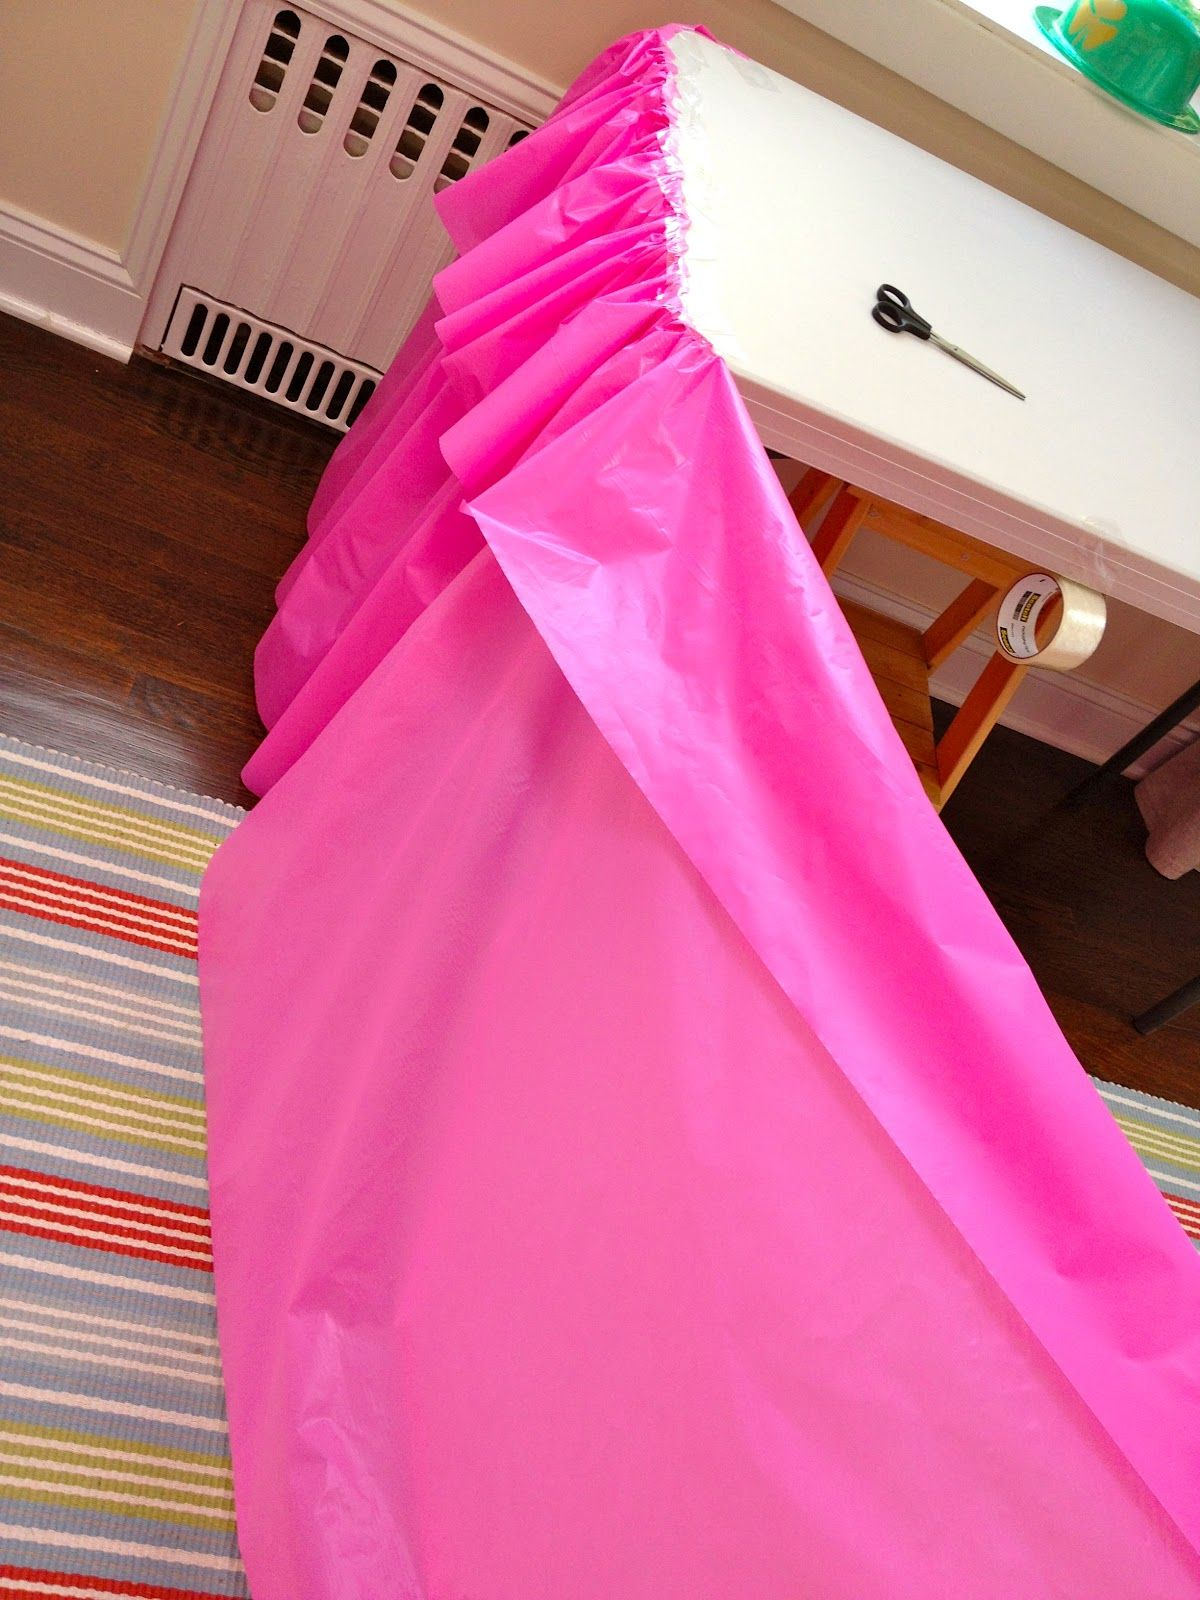 how to make a plastic table cloth look like a ruffled table skirt cute